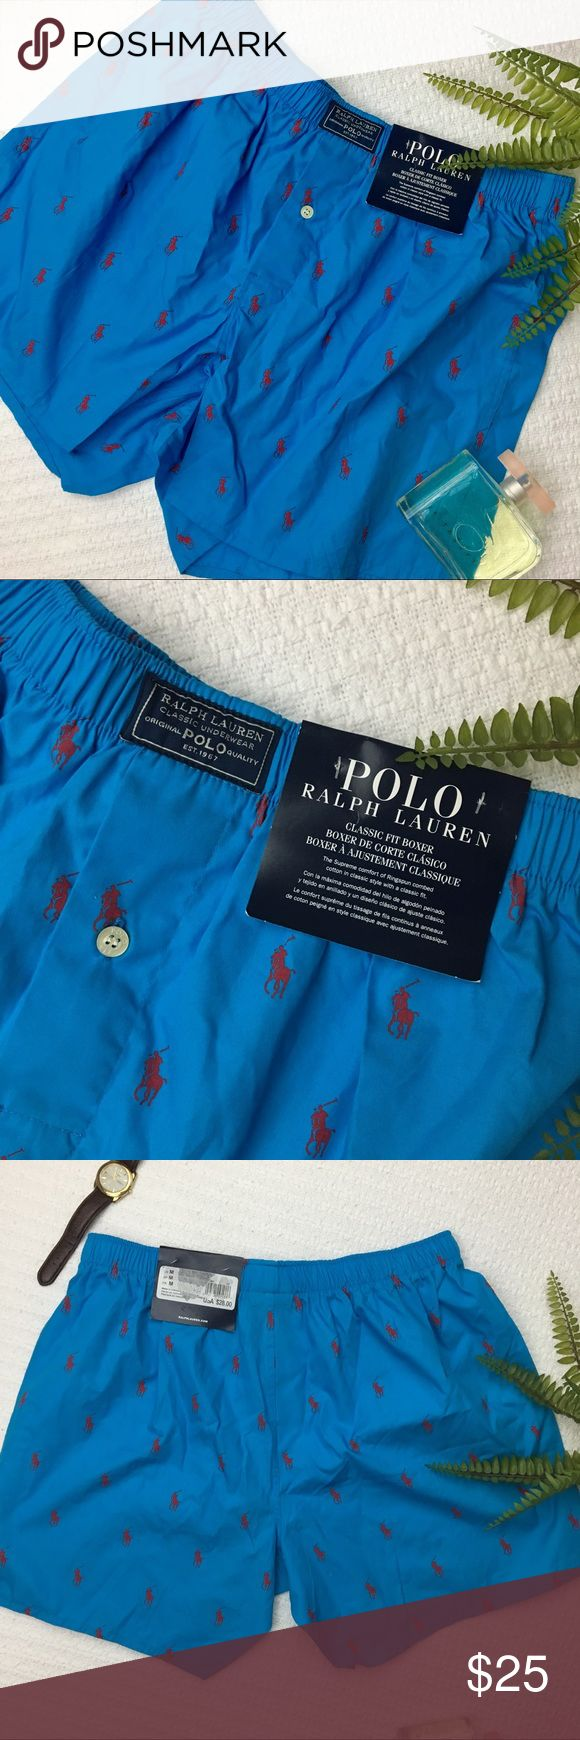 """POLO Ralph Lauren Classic Boxers Hey ladies! This is such an easy """"go-to"""" present for any man! Bright blue 'classic fit' POLO Ralph Lauren boxers NWT Polo by Ralph Lauren Underwear & Socks Boxers"""